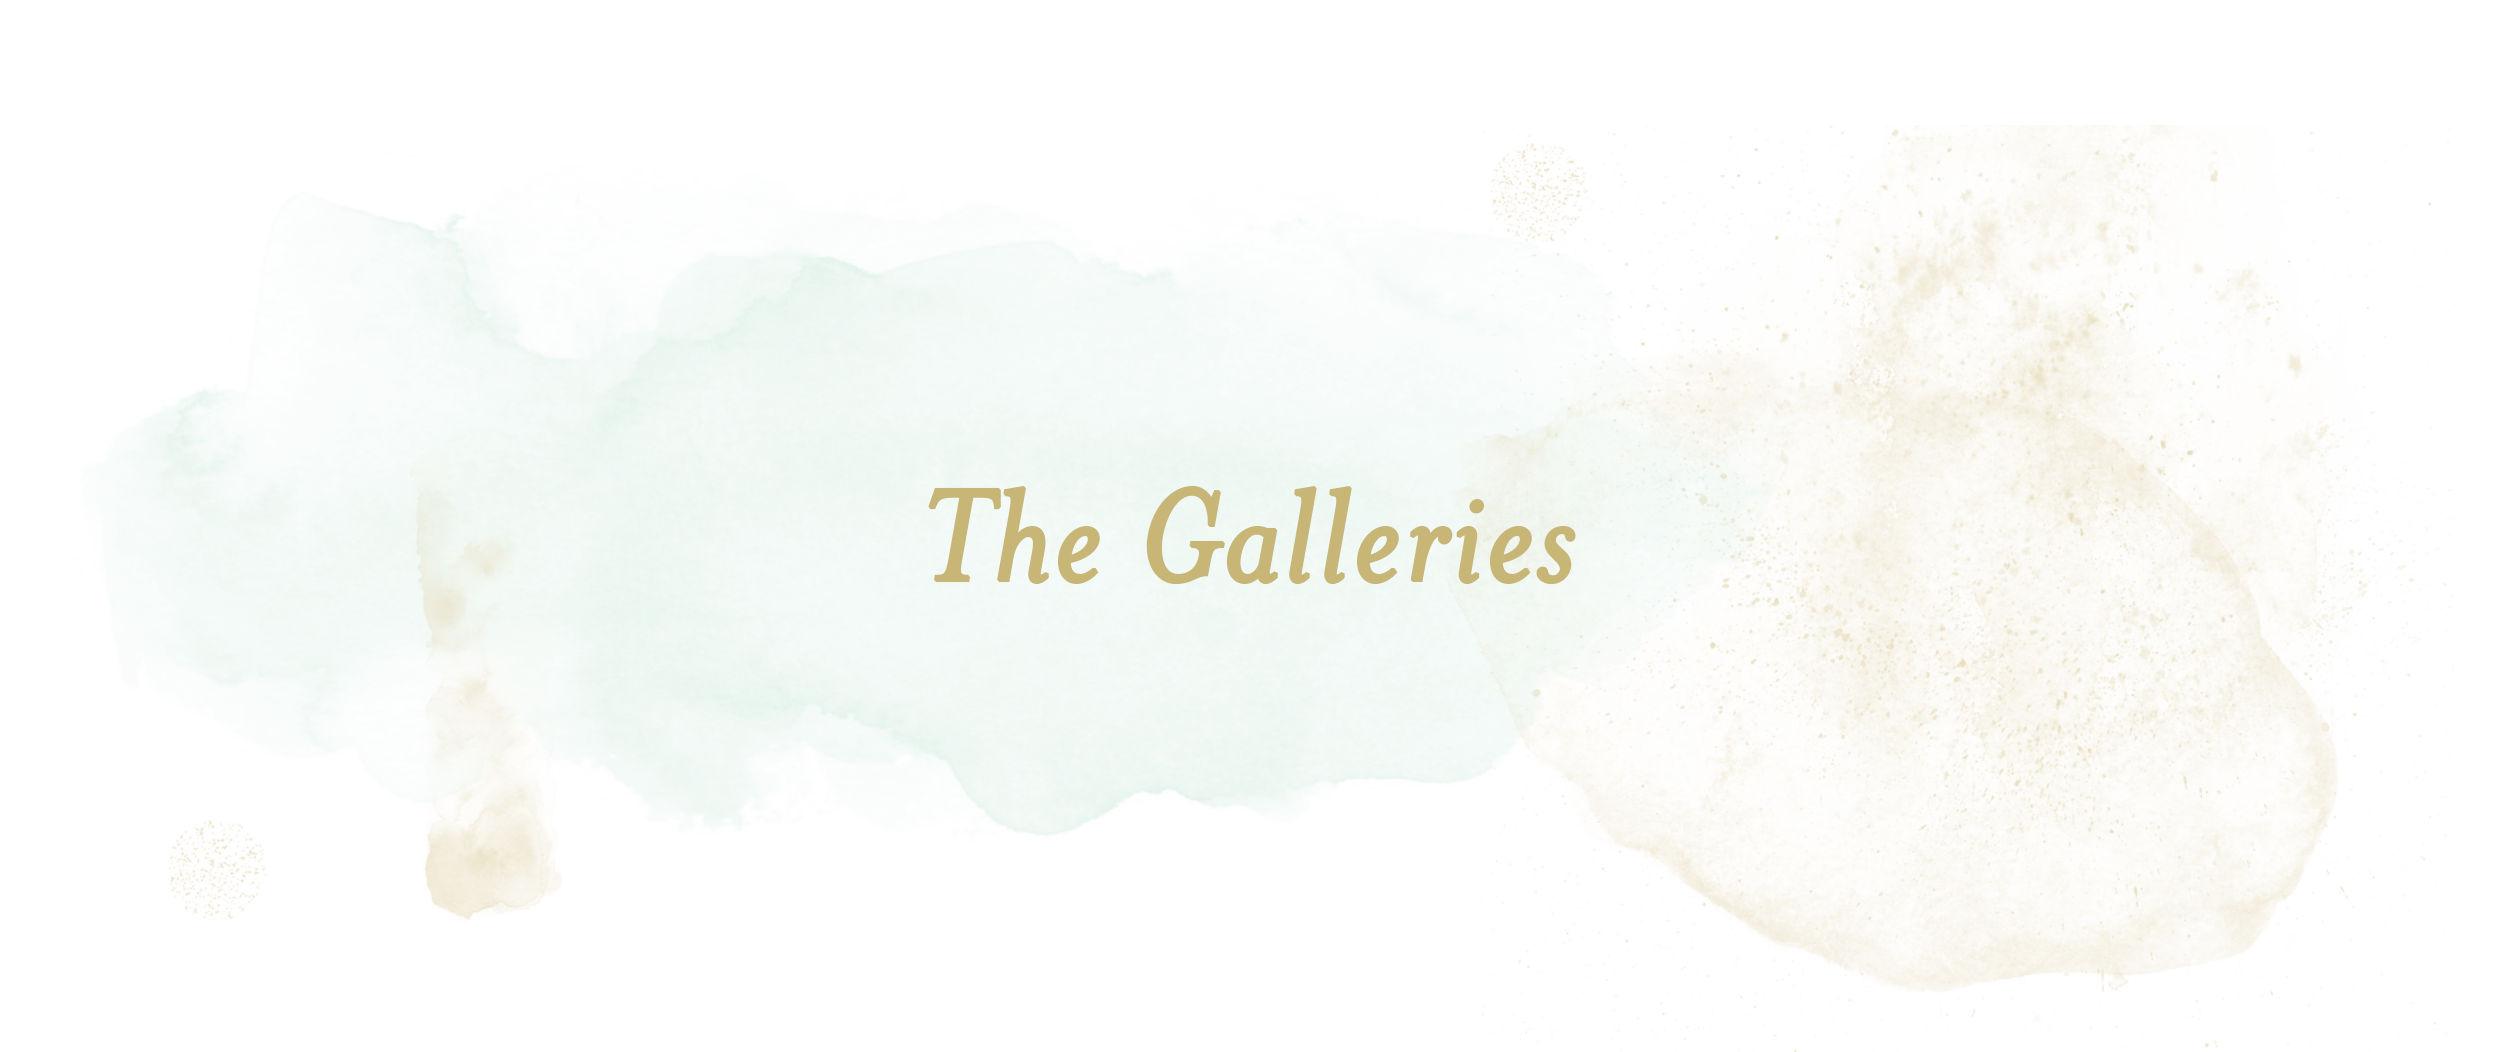 thegalleries_maryngraves -2.png